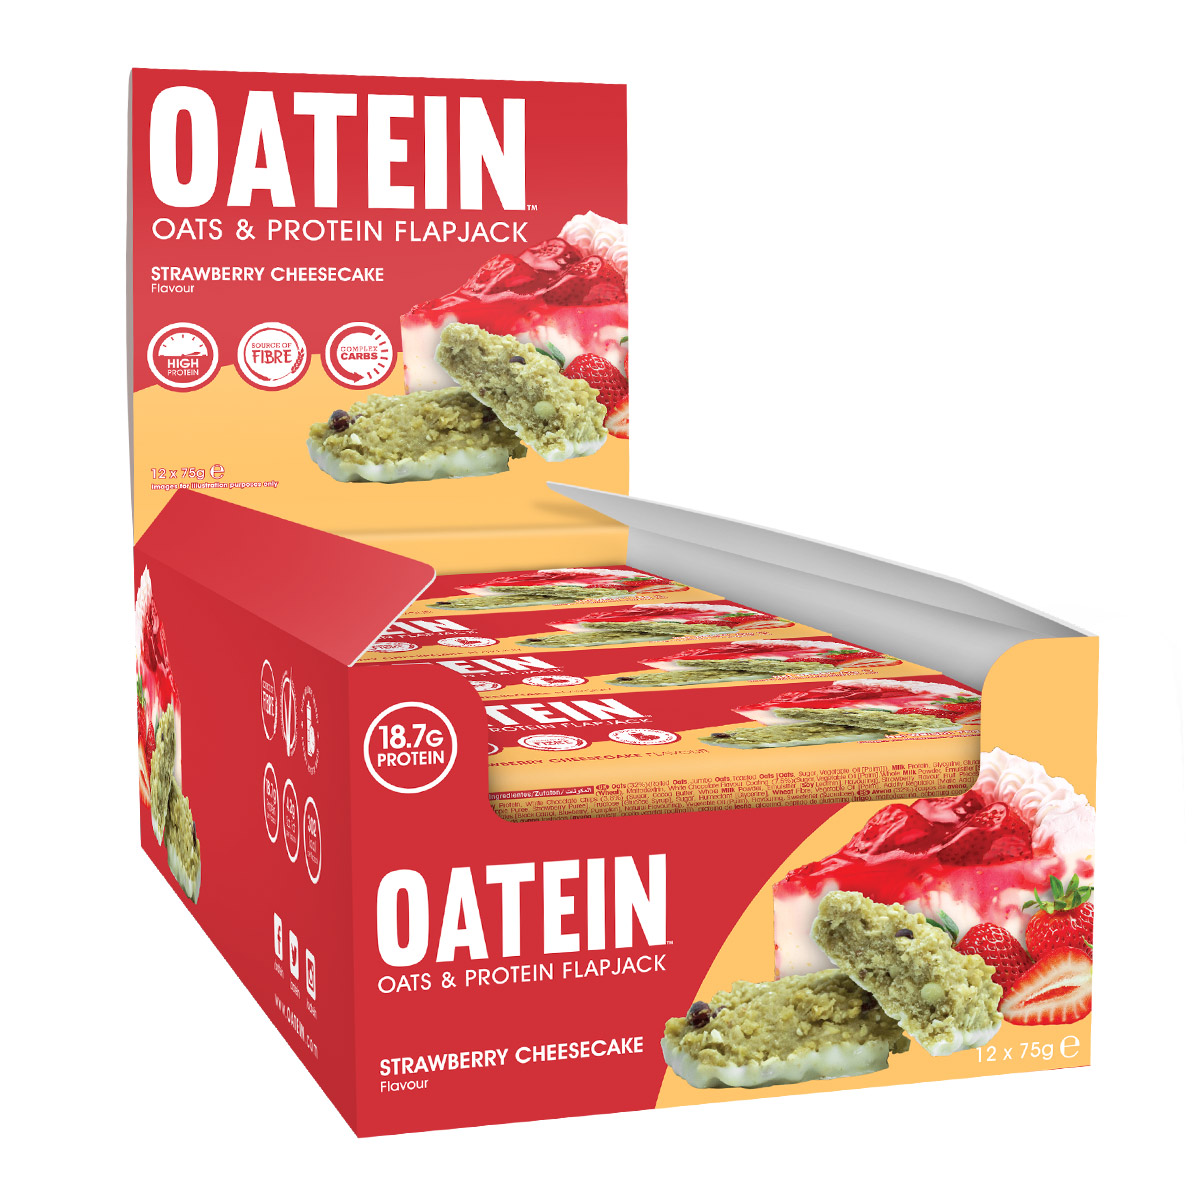 oatein_flapjack_75g_straw_cheesecake_front_side1